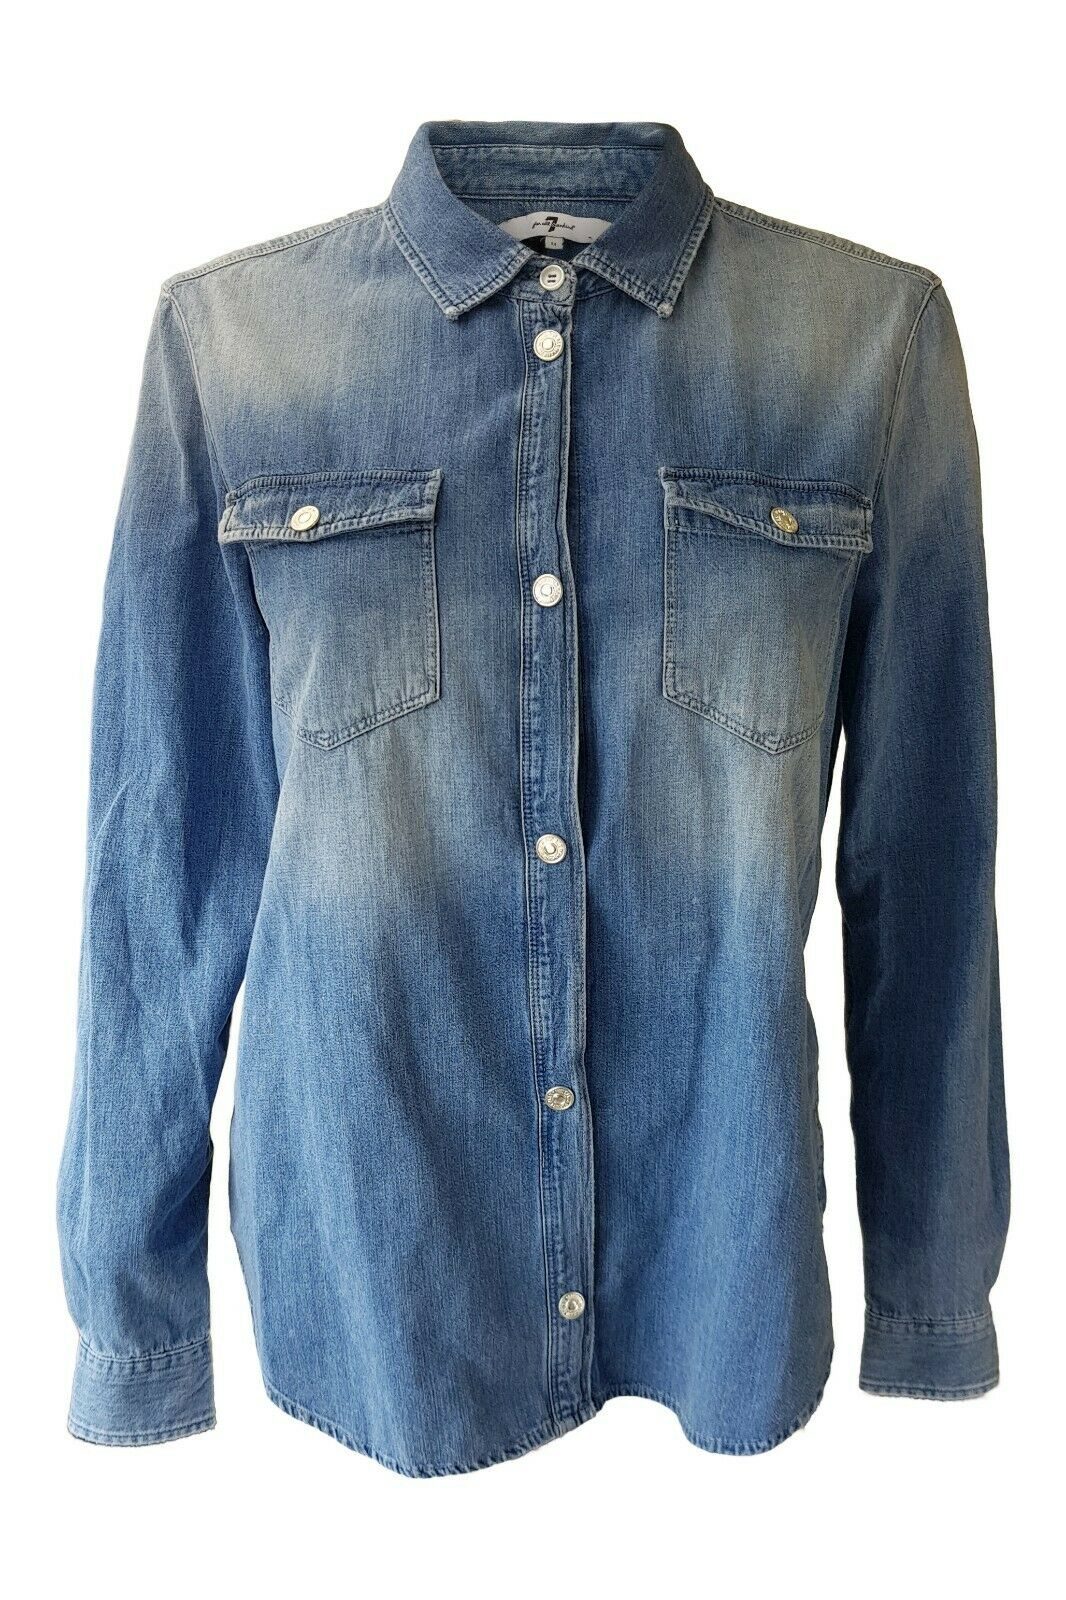 SEVEN FOR ALL MANKIND Denim Blau Button Front Shirt (M)